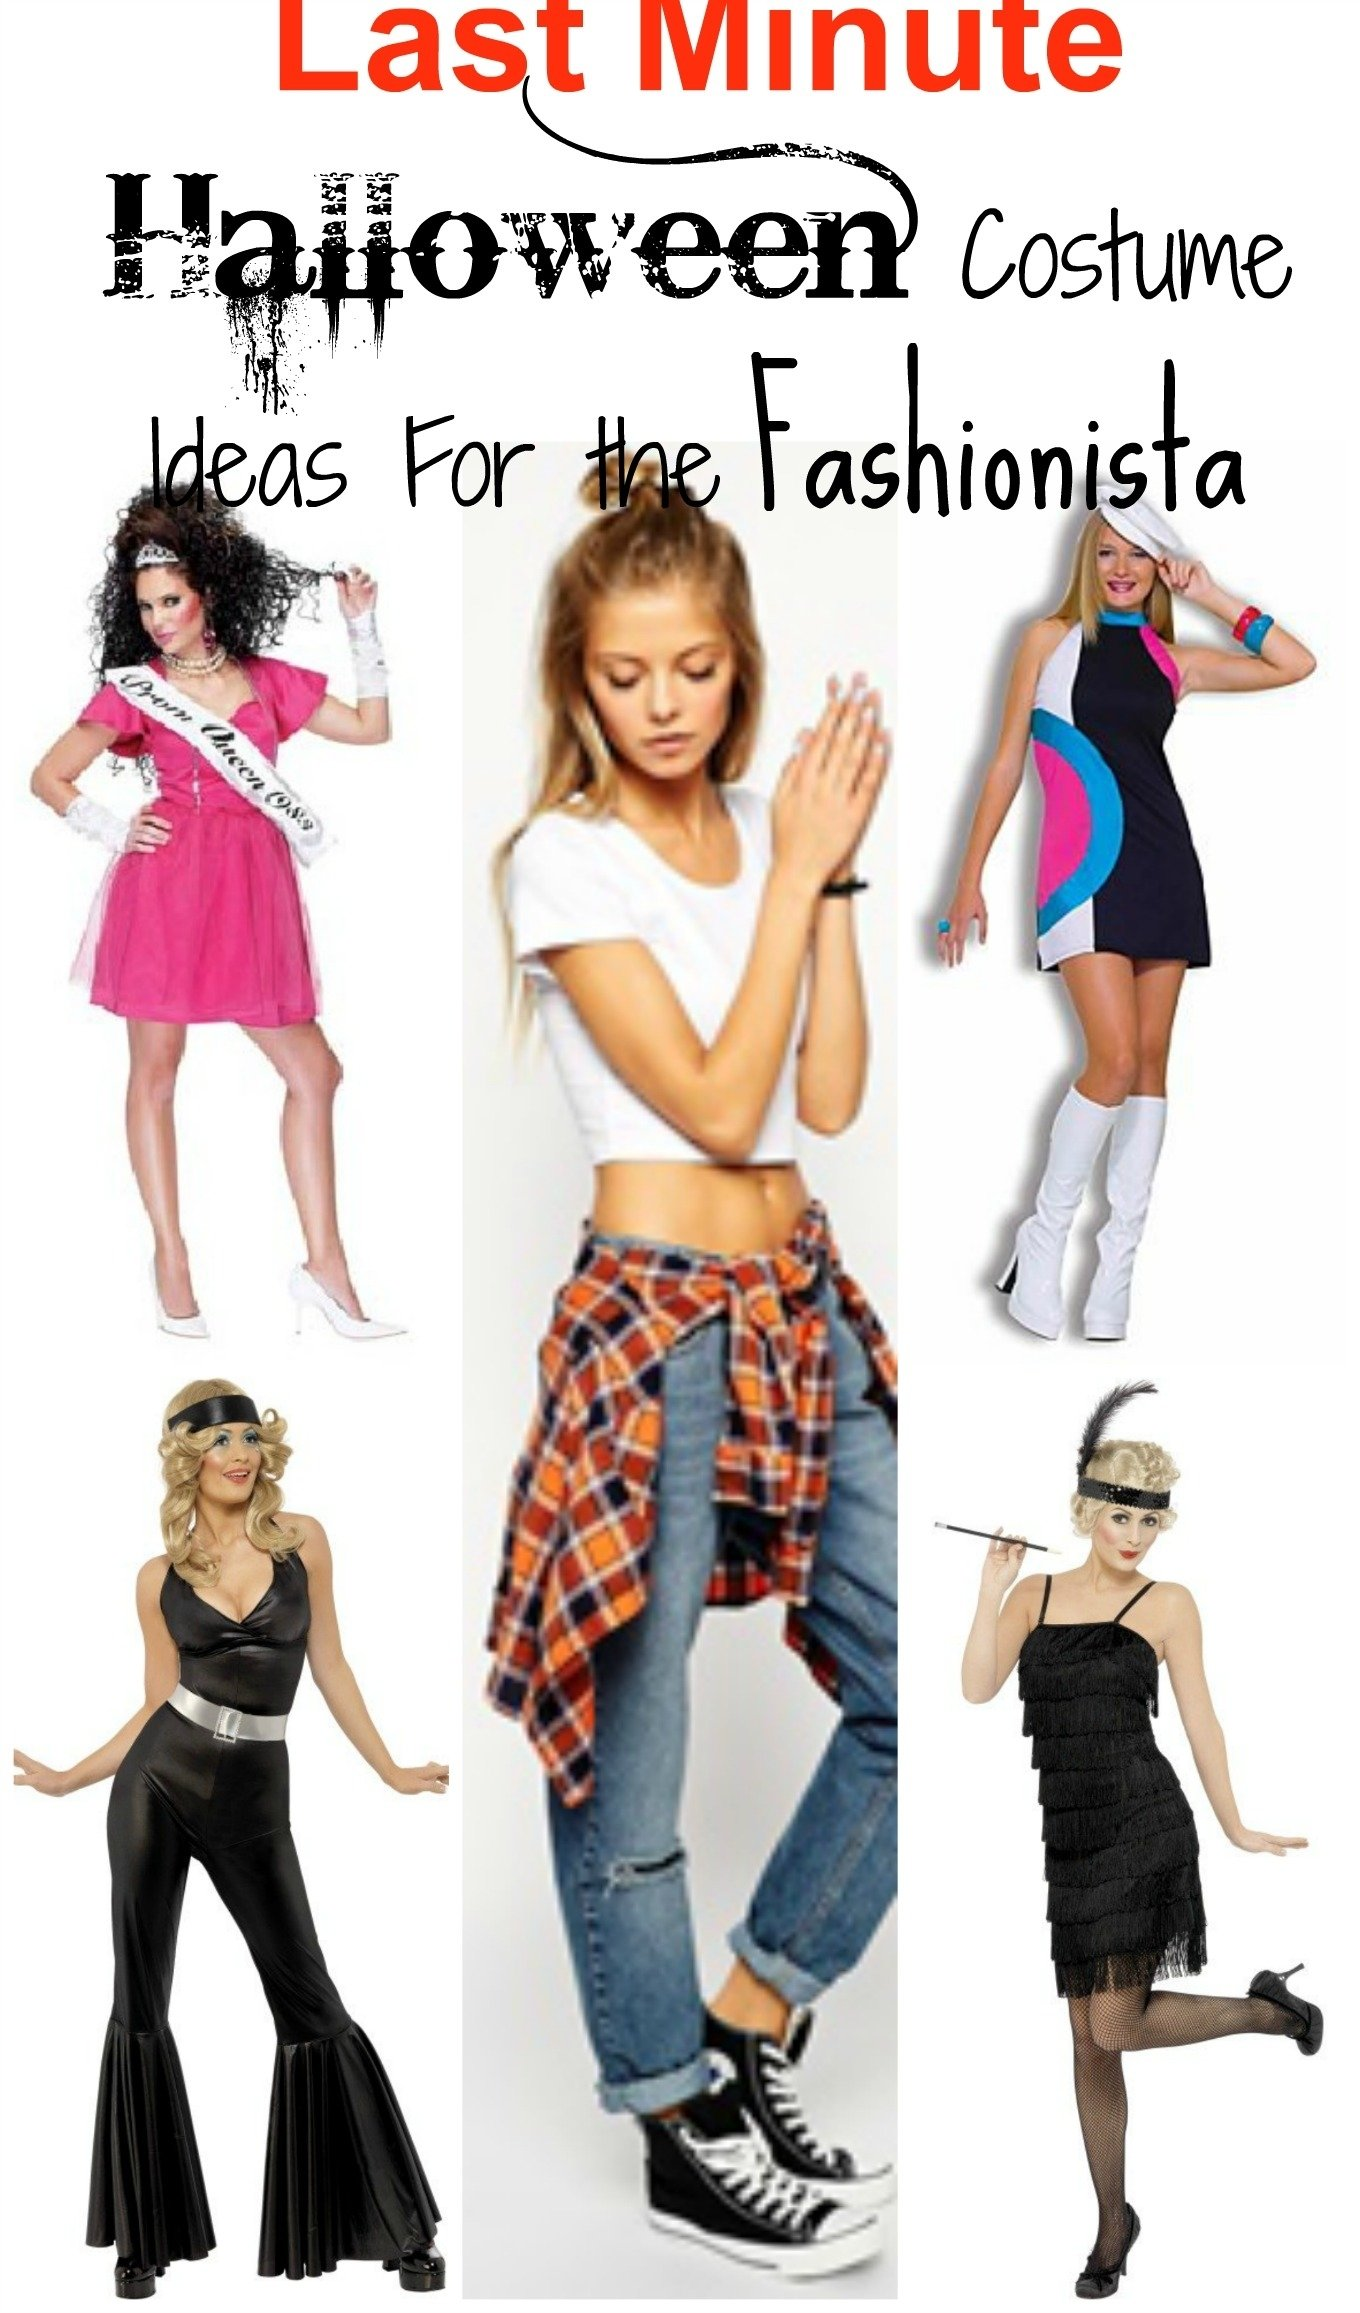 10 Cute Good Last Minute Costume Ideas 5 last minute halloween costume ideas for the fashionista 2020